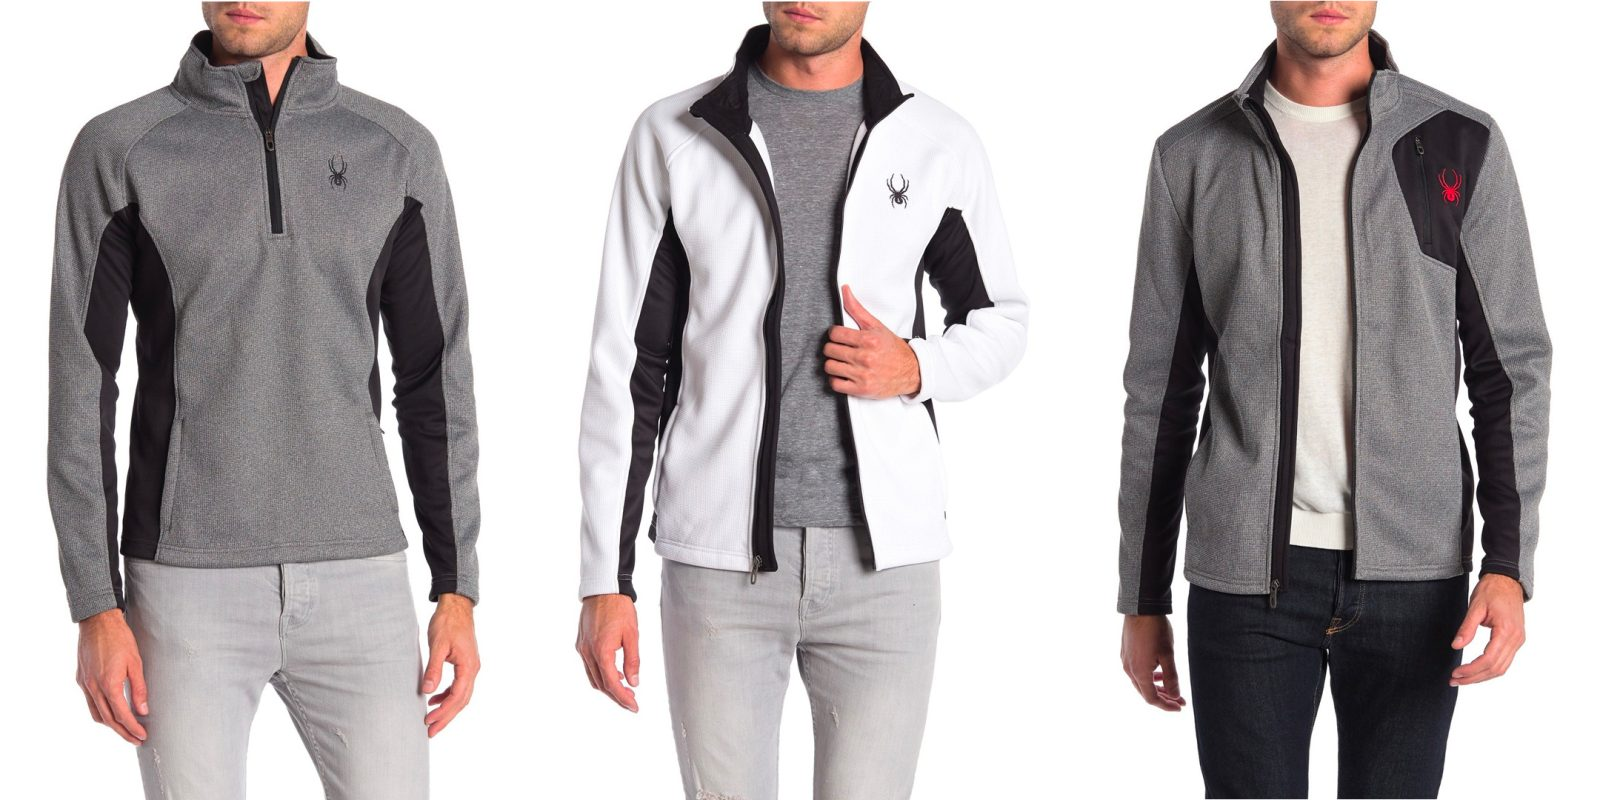 Spyder jackets, pullovers, and more under $50 at Hautelook